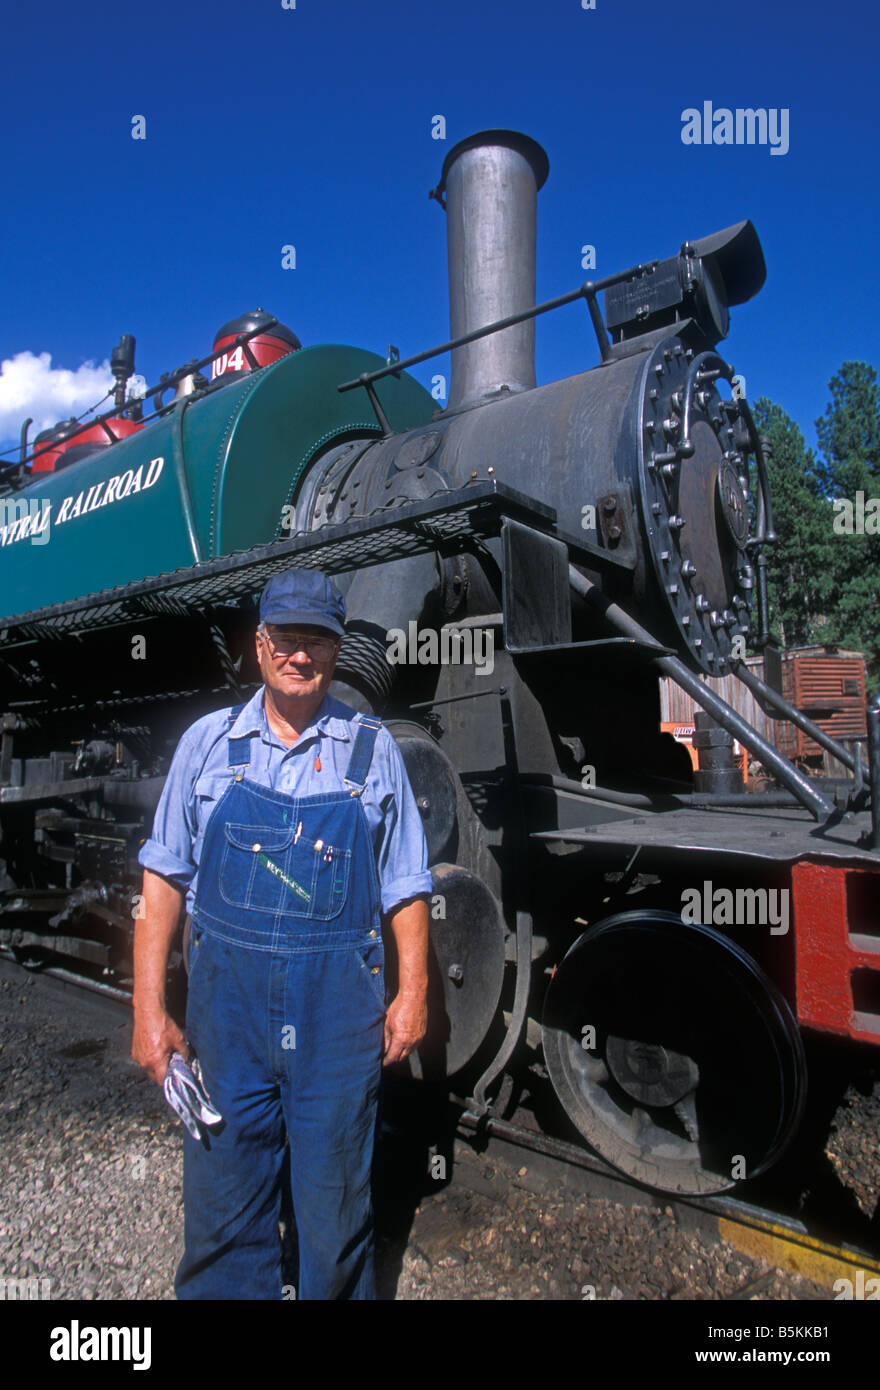 1, one, train fireman, fireman, train engineer, engineer, Black Hills Central Railroad, Hill City, Black Hills, - Stock Image